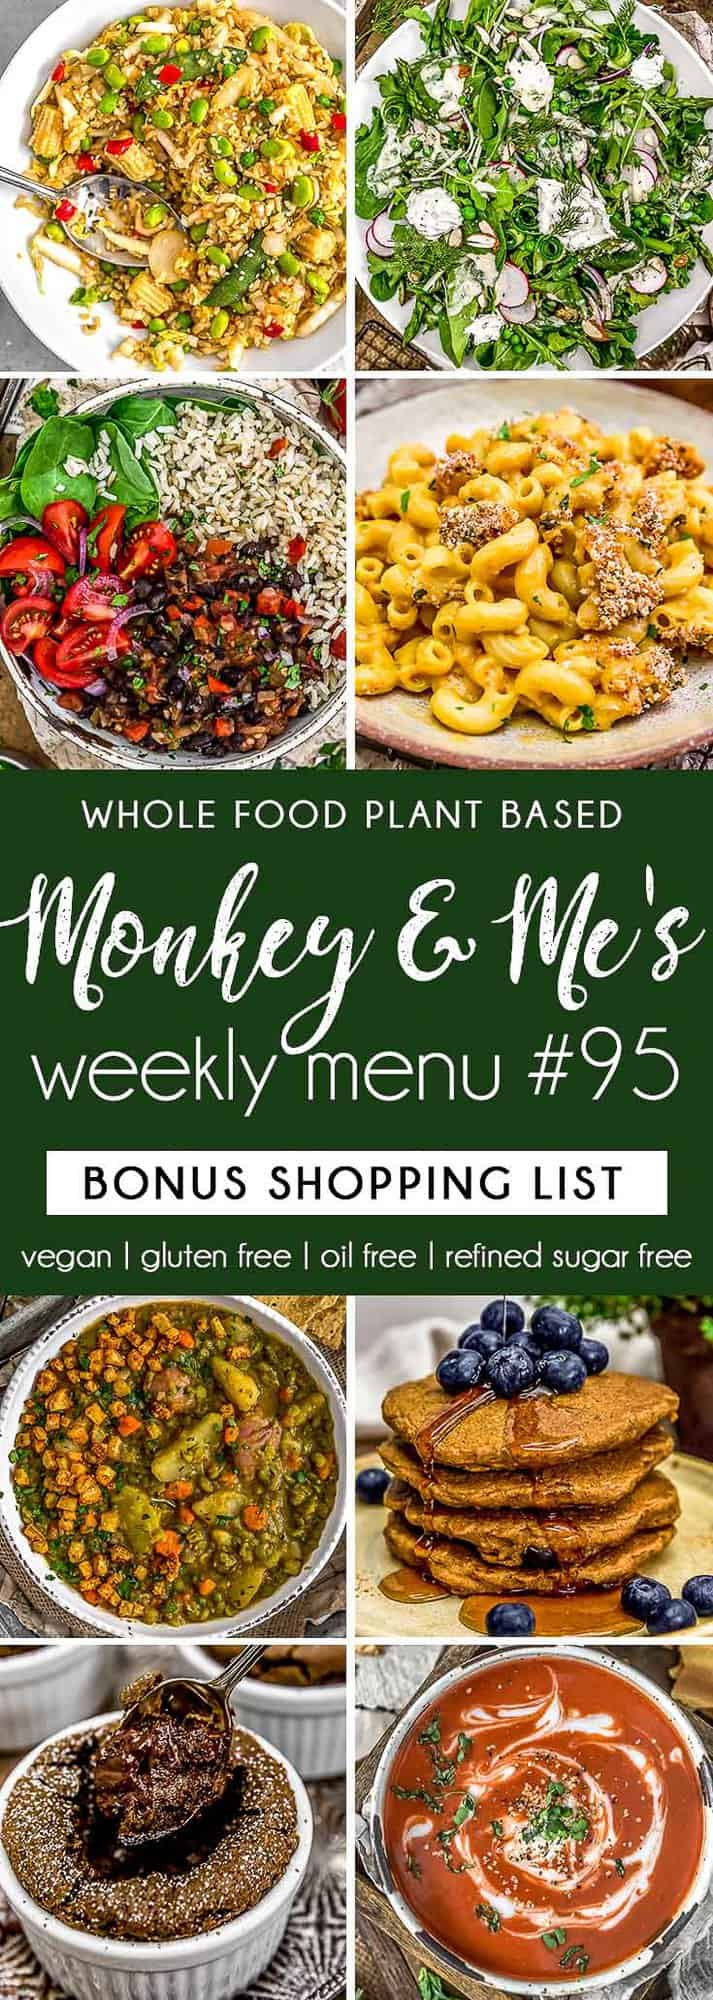 Monkey and Me's Menu 95 featuring 8 recipes